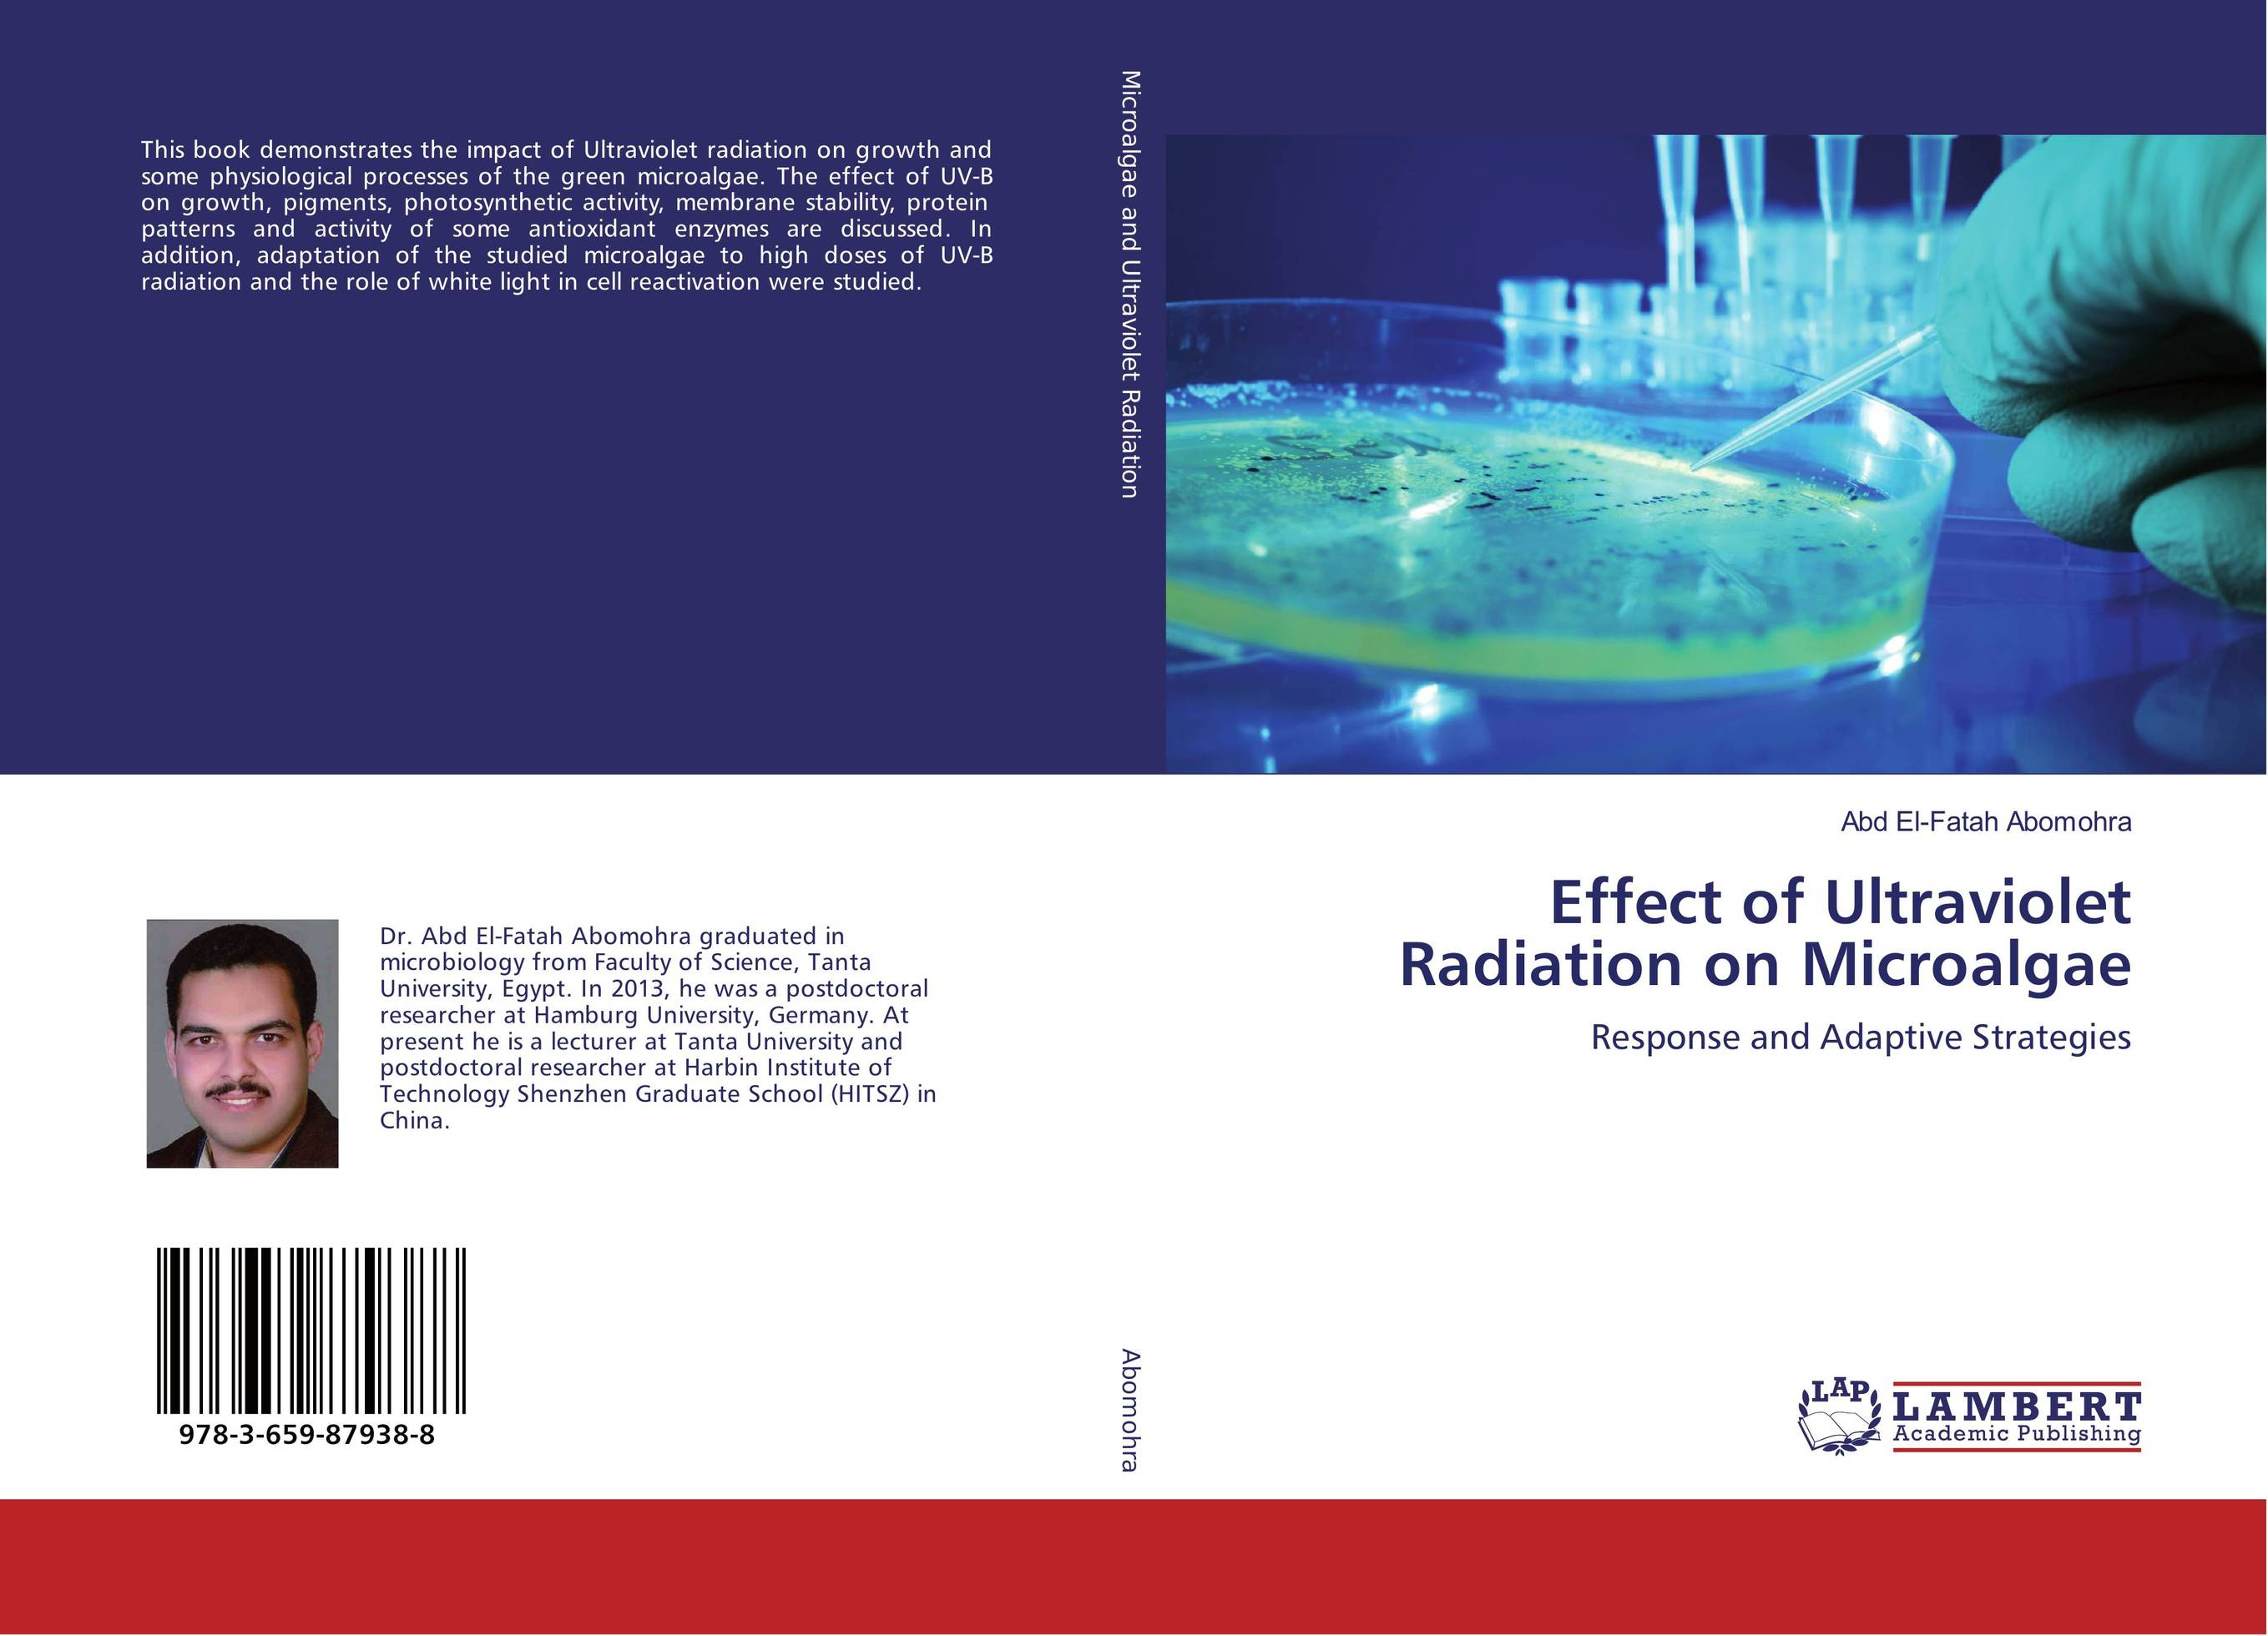 Effect of Ultraviolet Radiation on Microalgae activity recovery growth paper